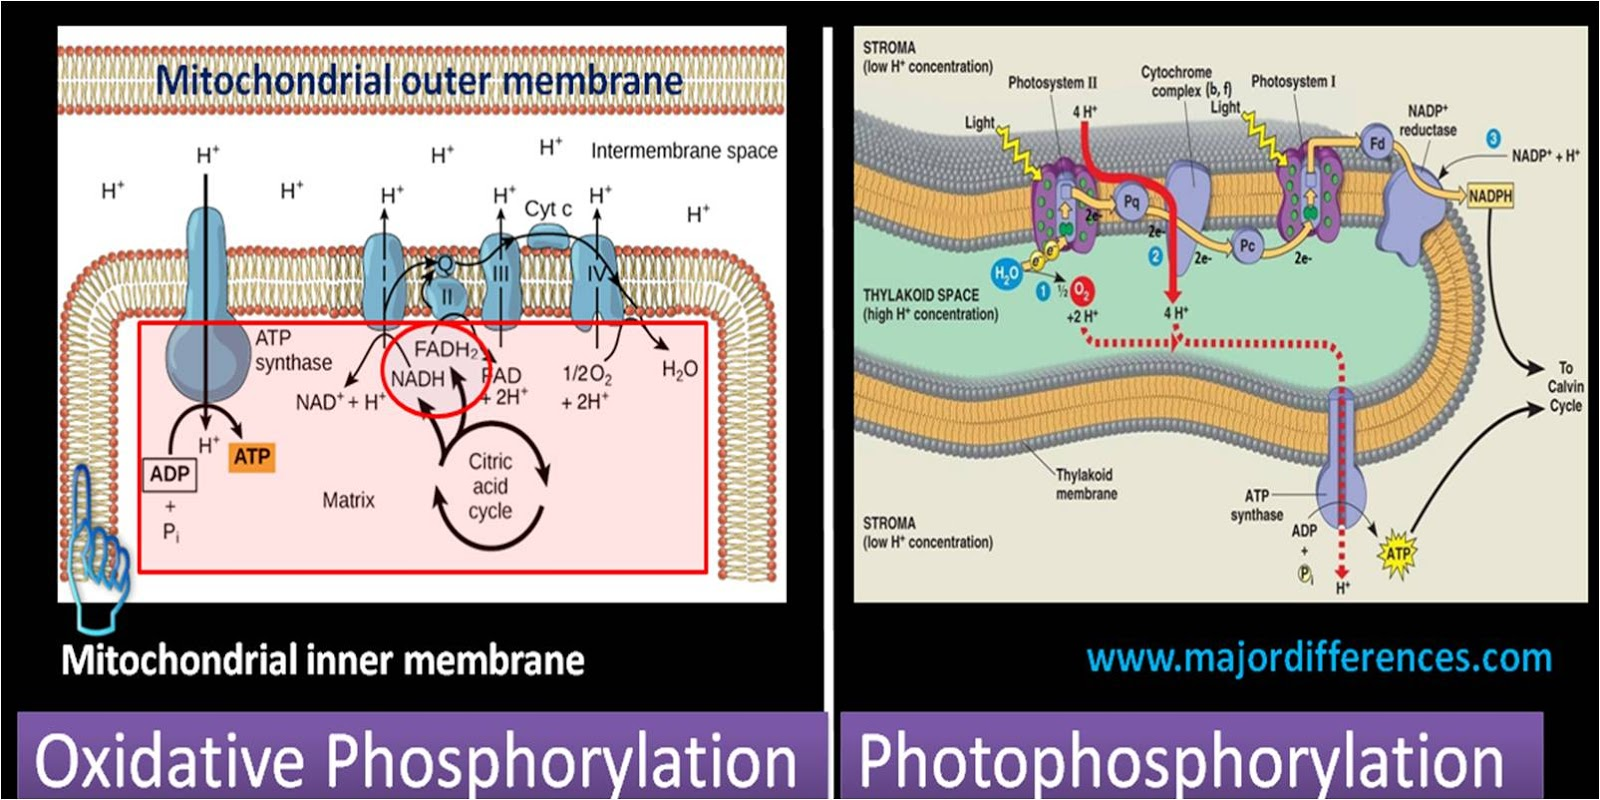 Oxidative Phosphorylation VS Photophosphorylation